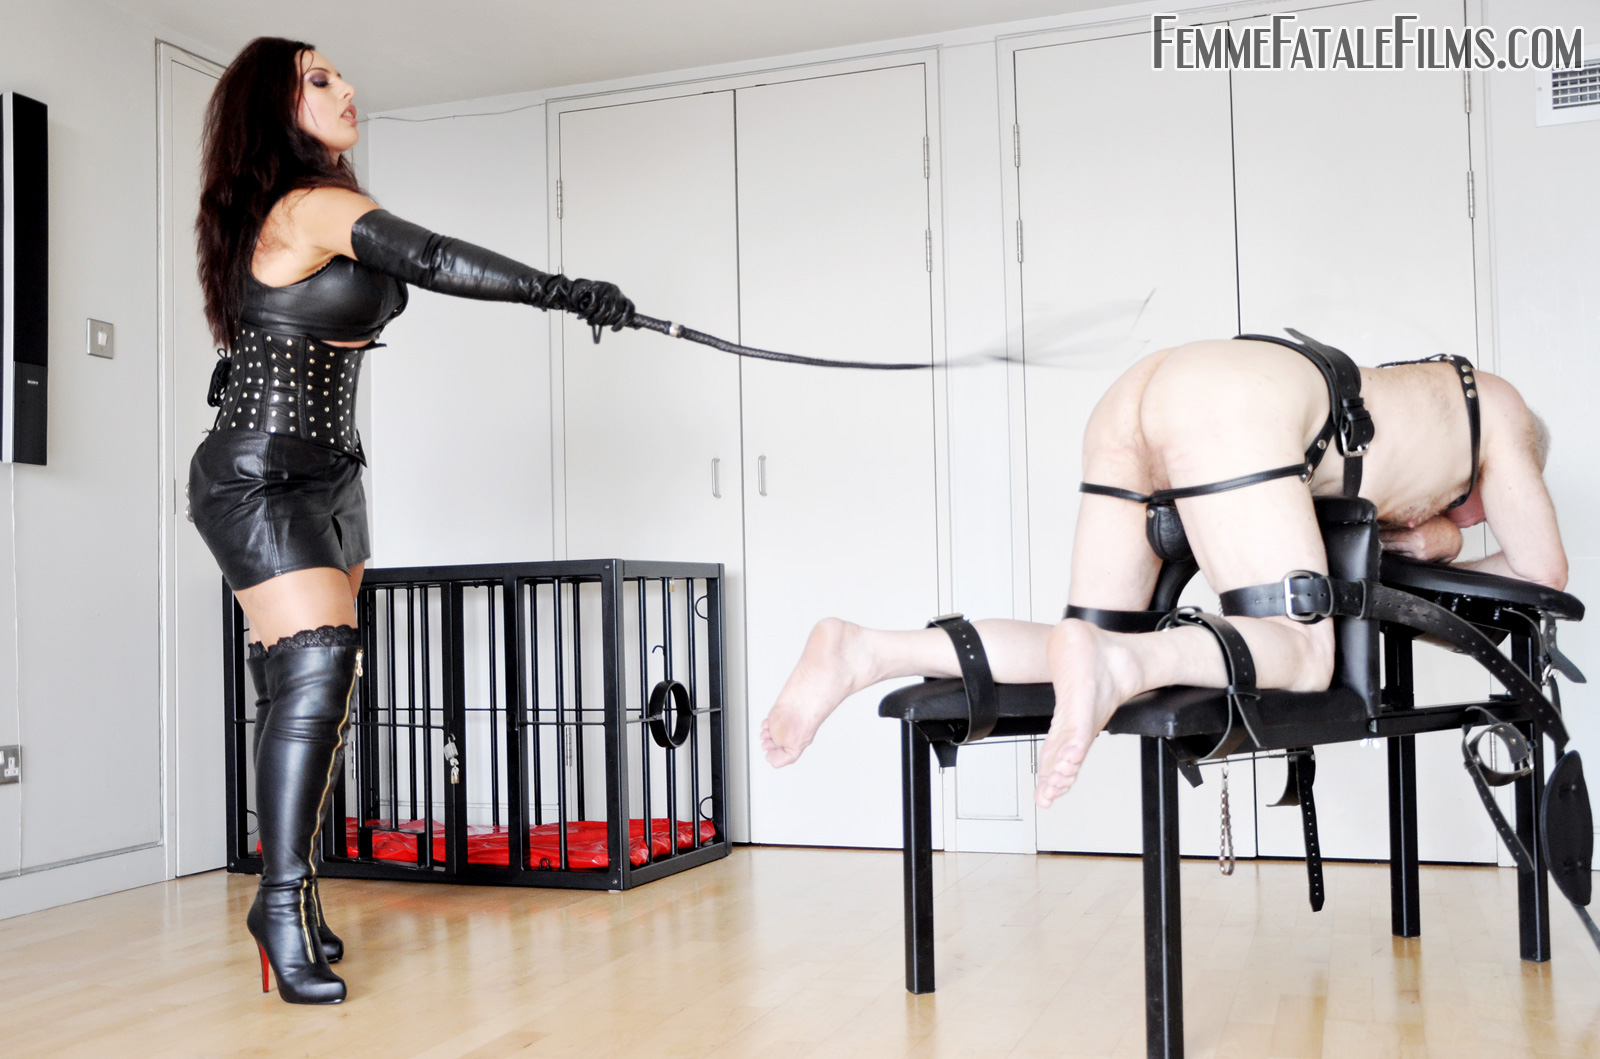 Comfort! apologise, bdsm women whipping men this rather